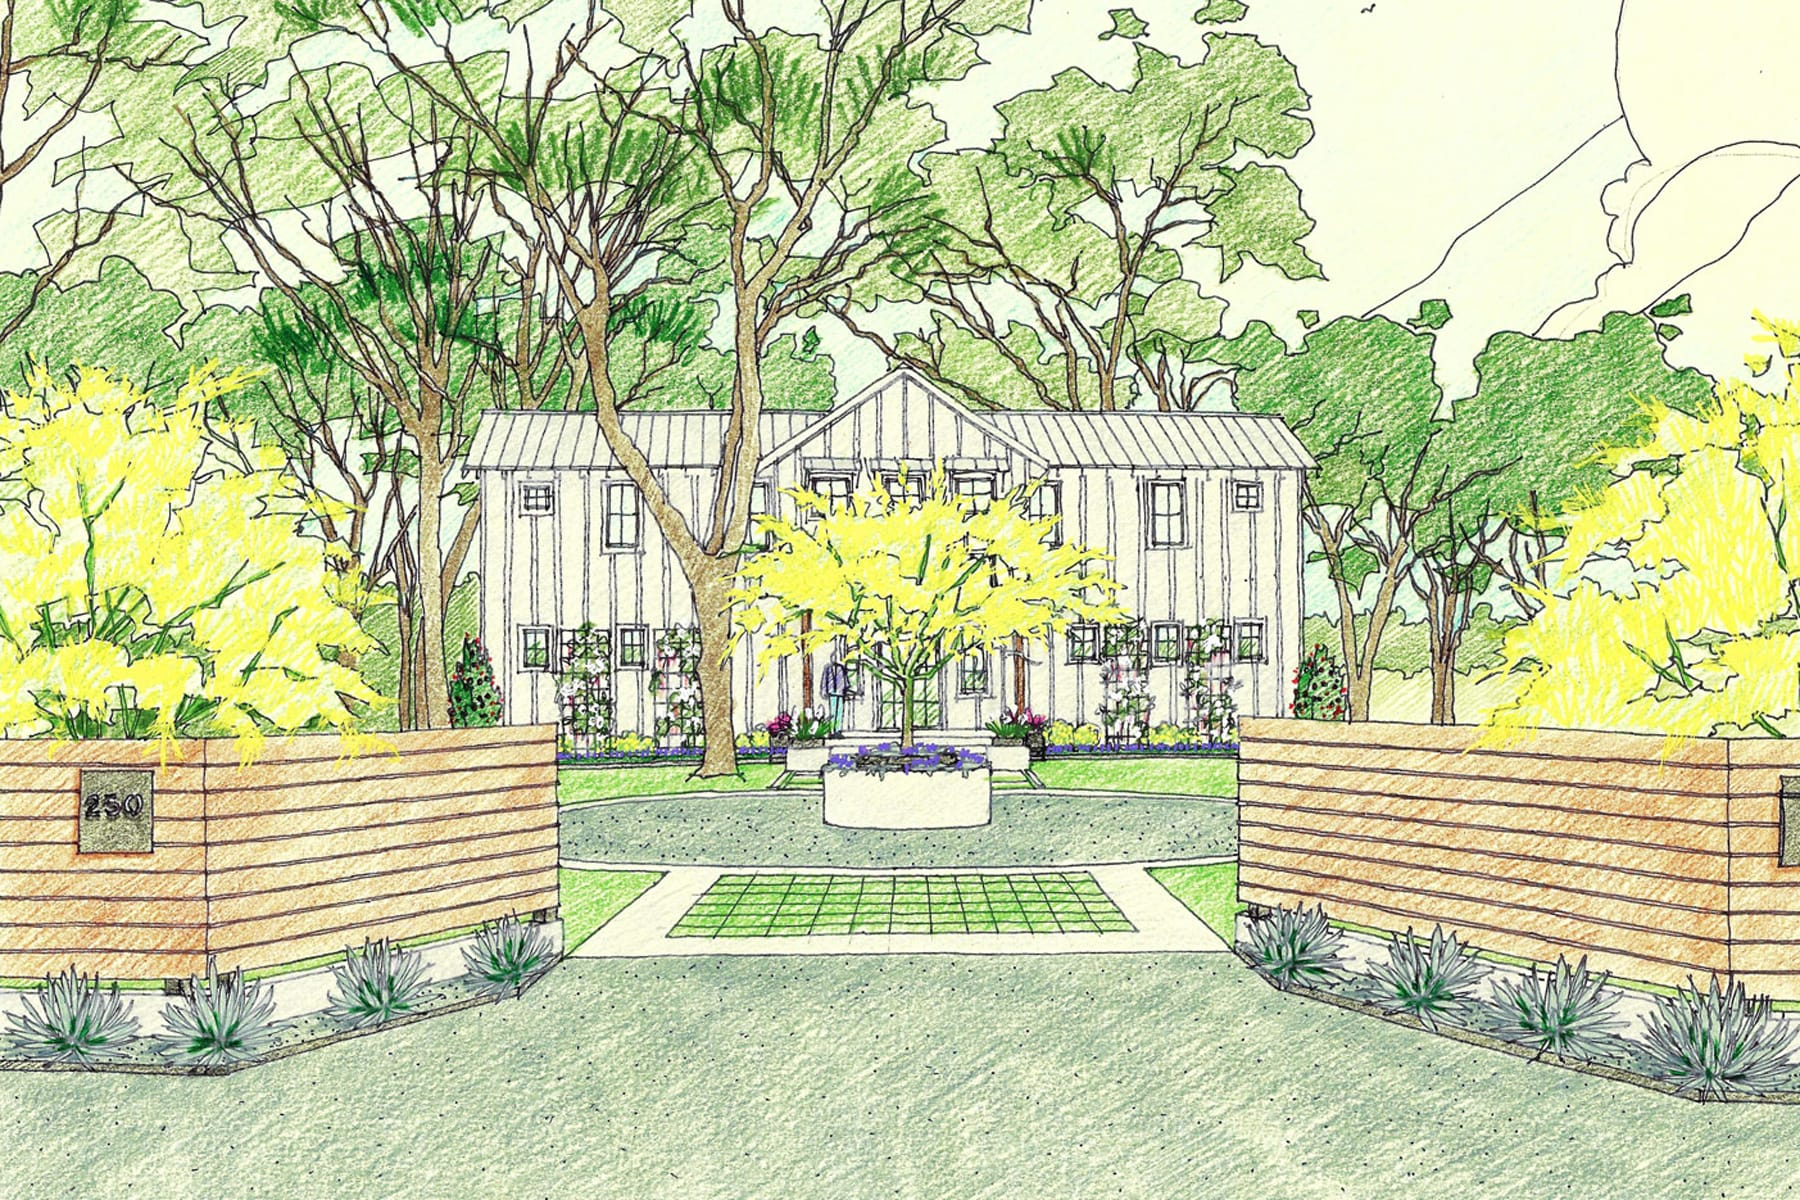 architectural landscape design rendering drawing